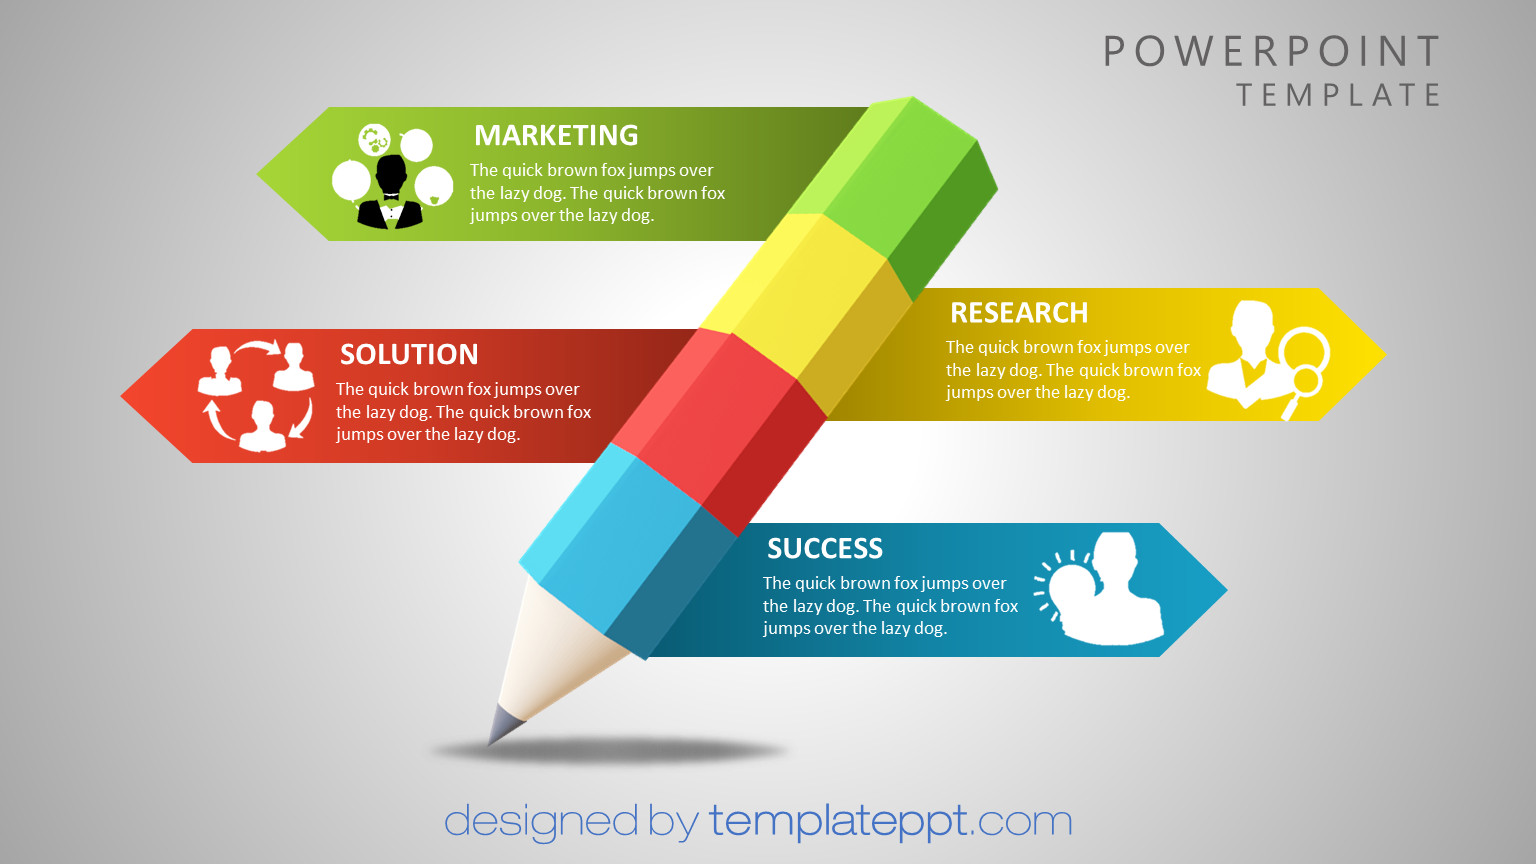 Free Animated Powerpoint Templates 3d Animated Powerpoint Templates Free Using Paint